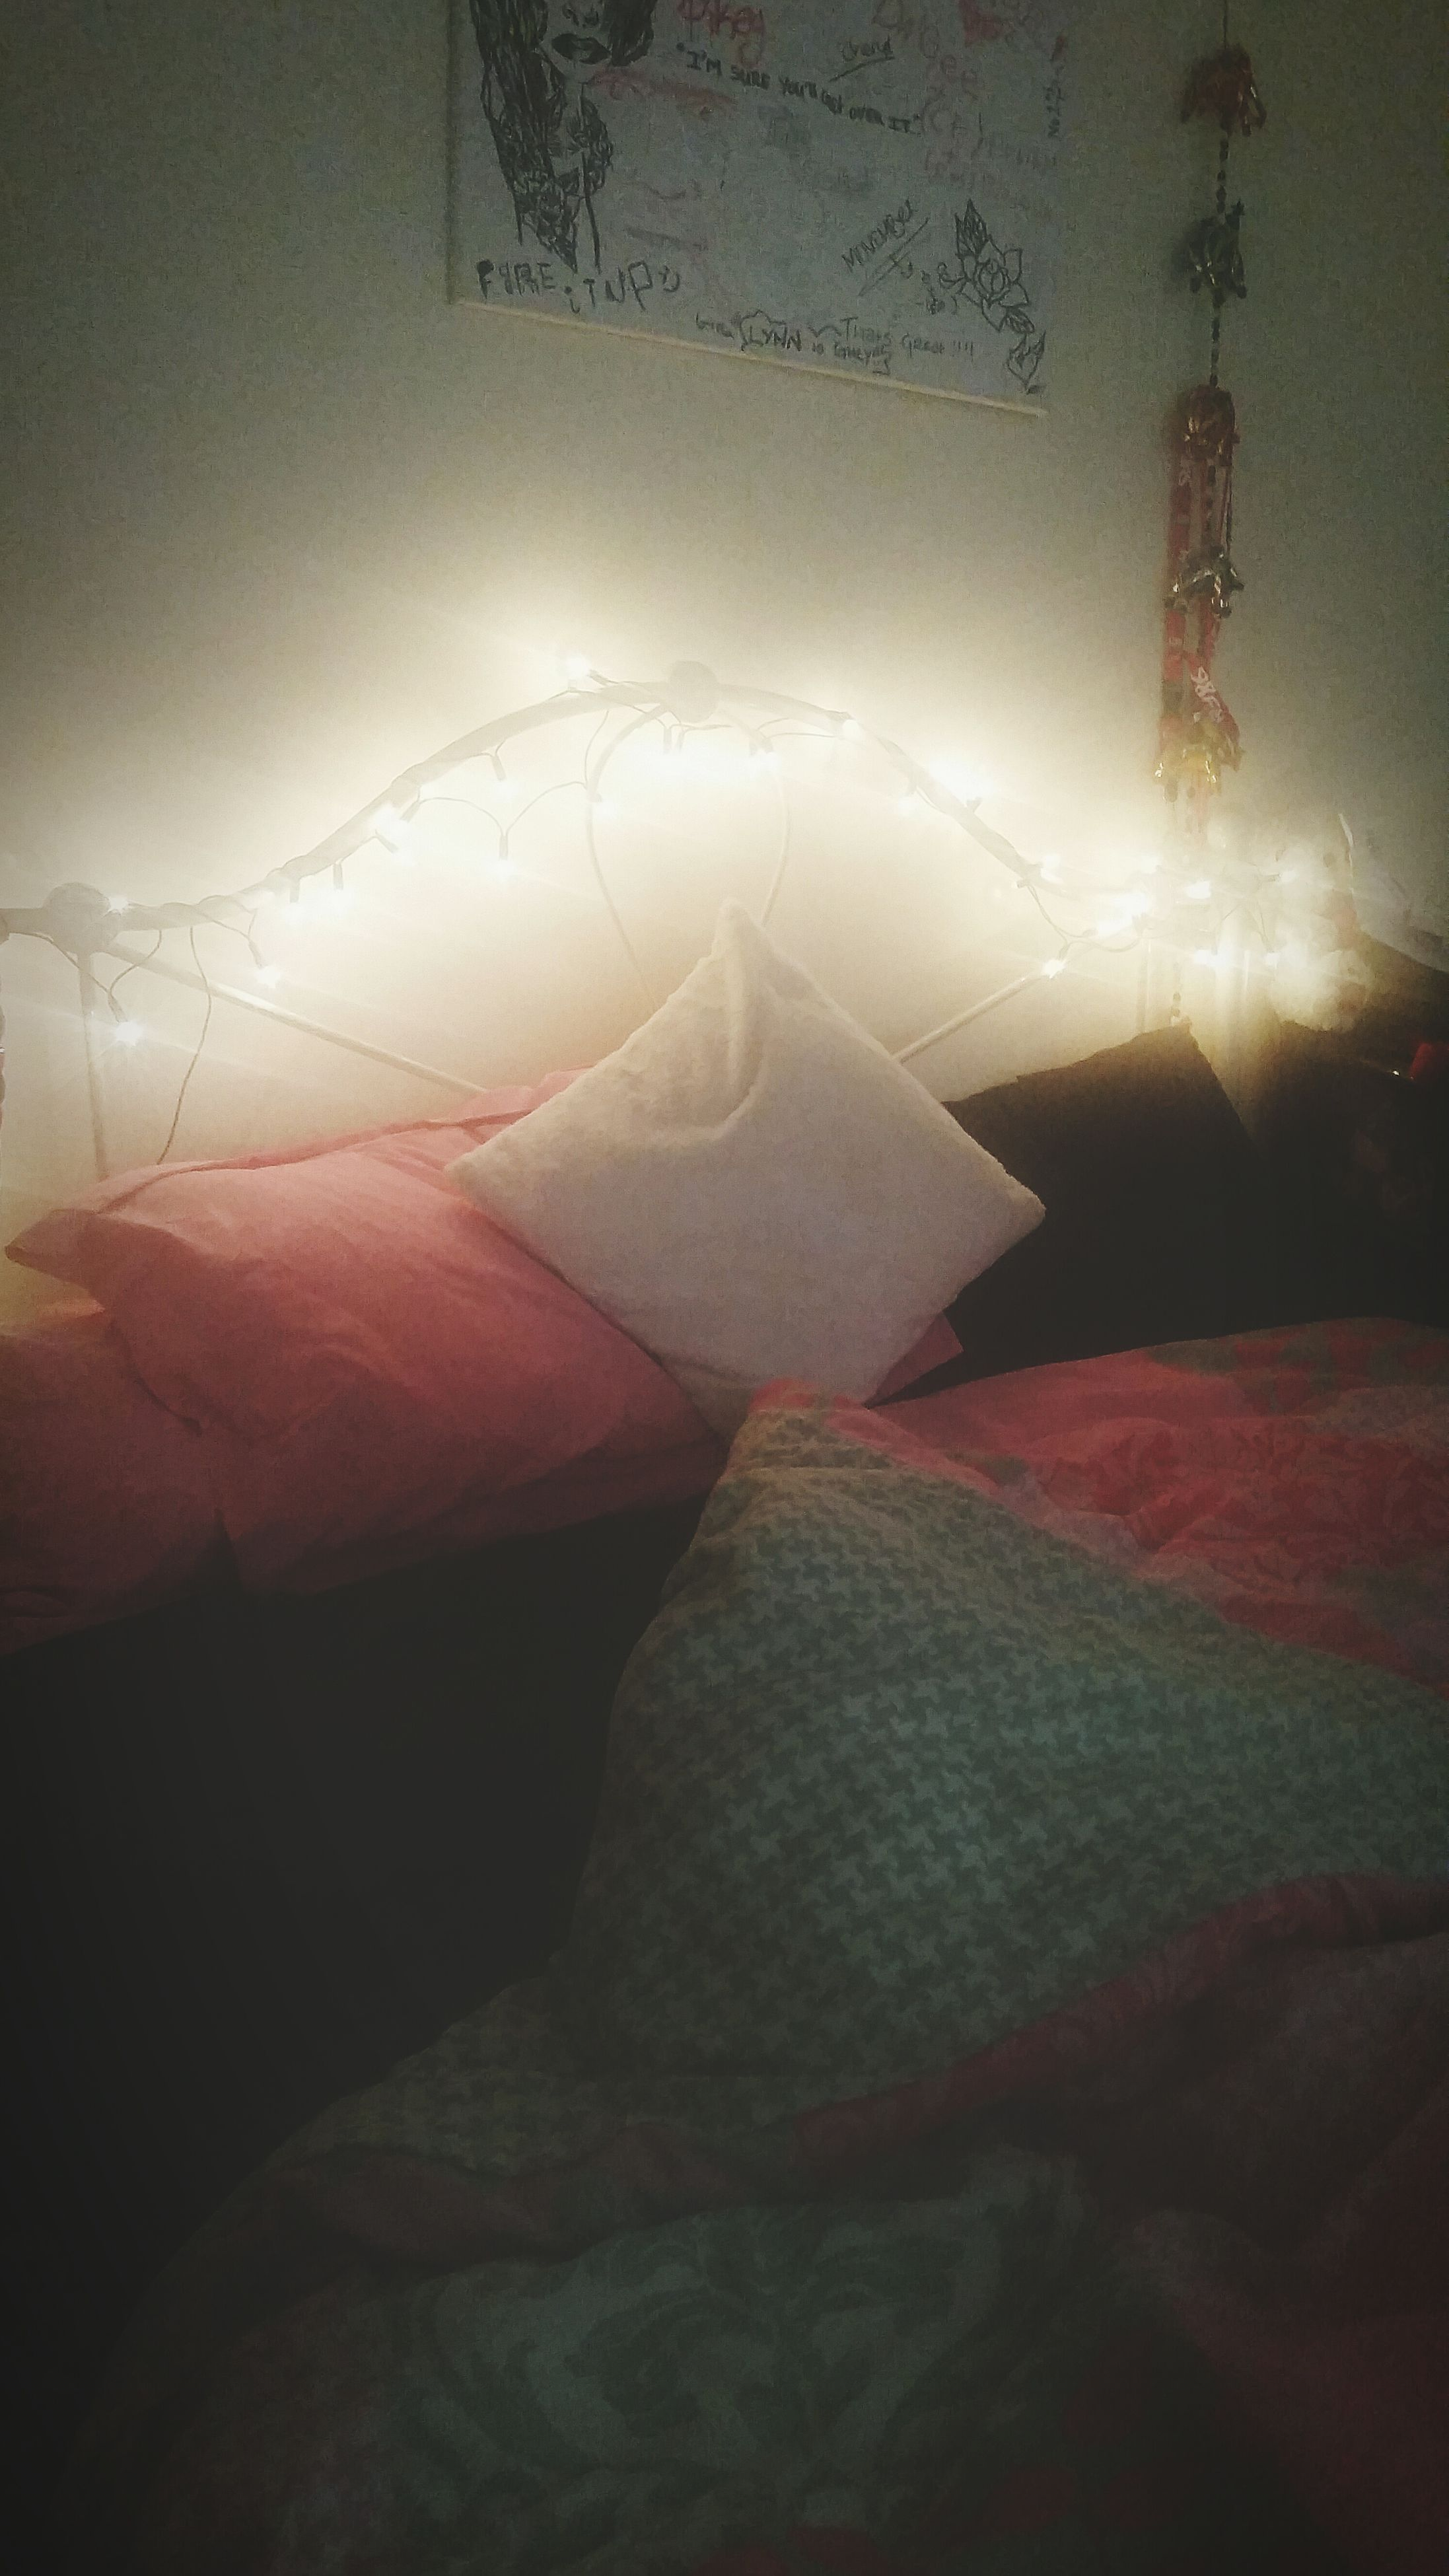 indoors, illuminated, textile, pattern, fabric, electricity, winter, no people, lighting equipment, covering, night, snow, wall - building feature, tranquility, nature, cold temperature, copy space, white color, sky